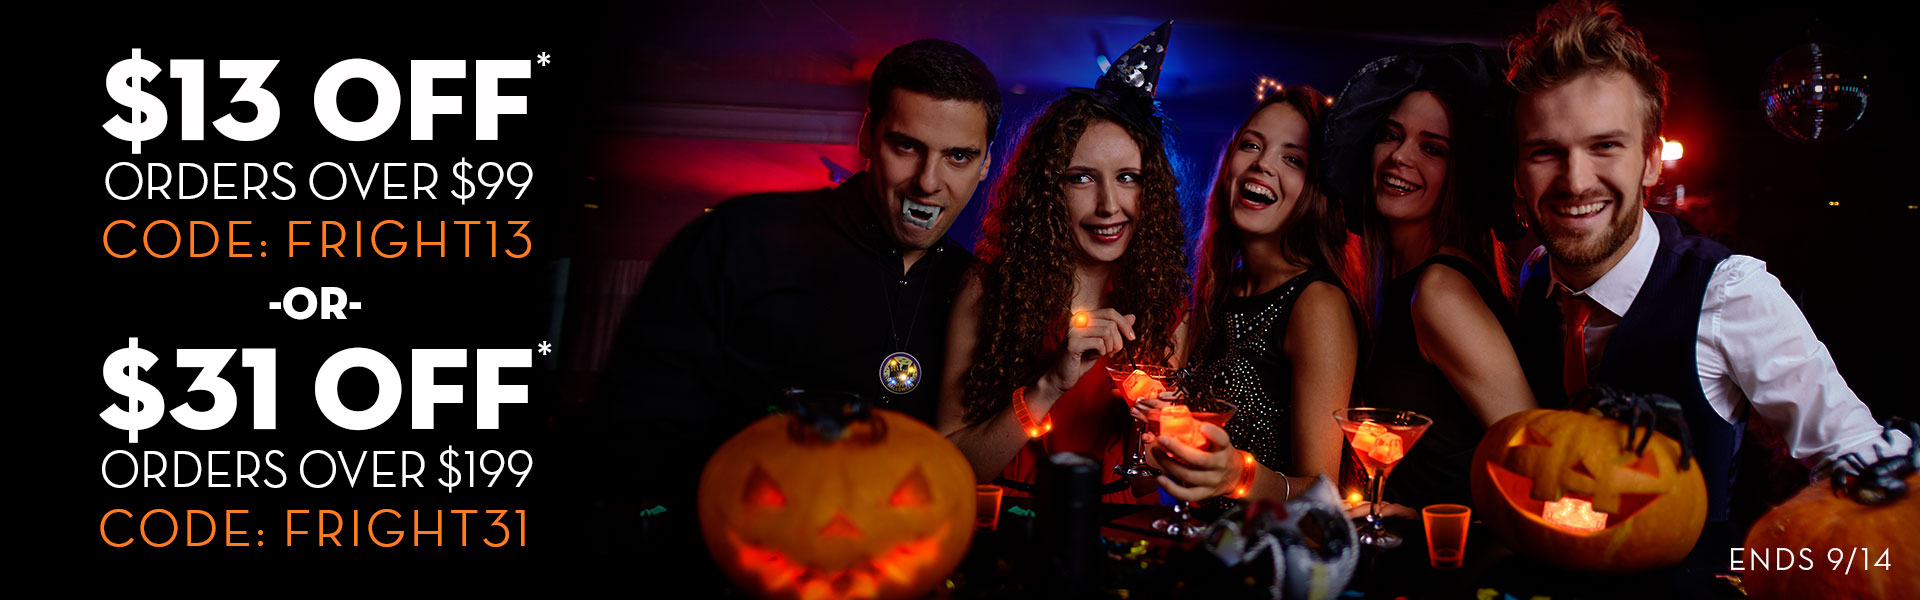 Male and Female model displaying light up Halloween Products